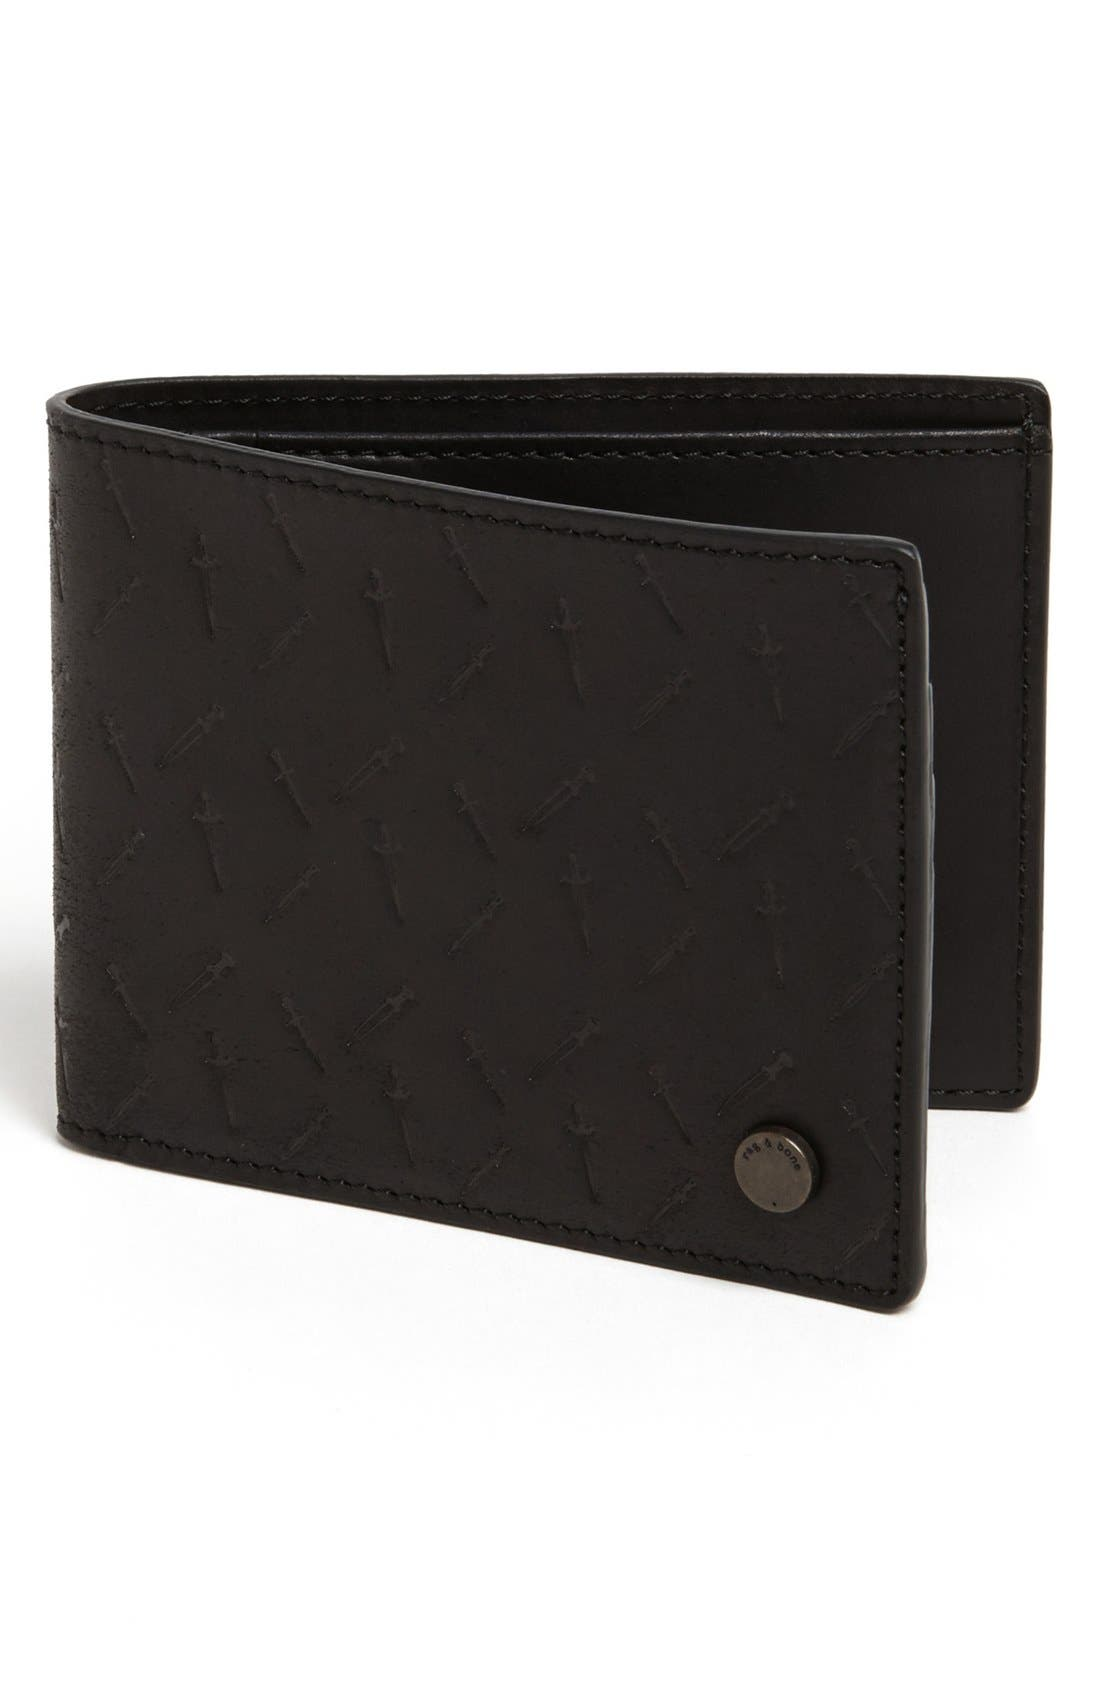 Alternate Image 1 Selected - rag & bone 'Dagger' Wallet